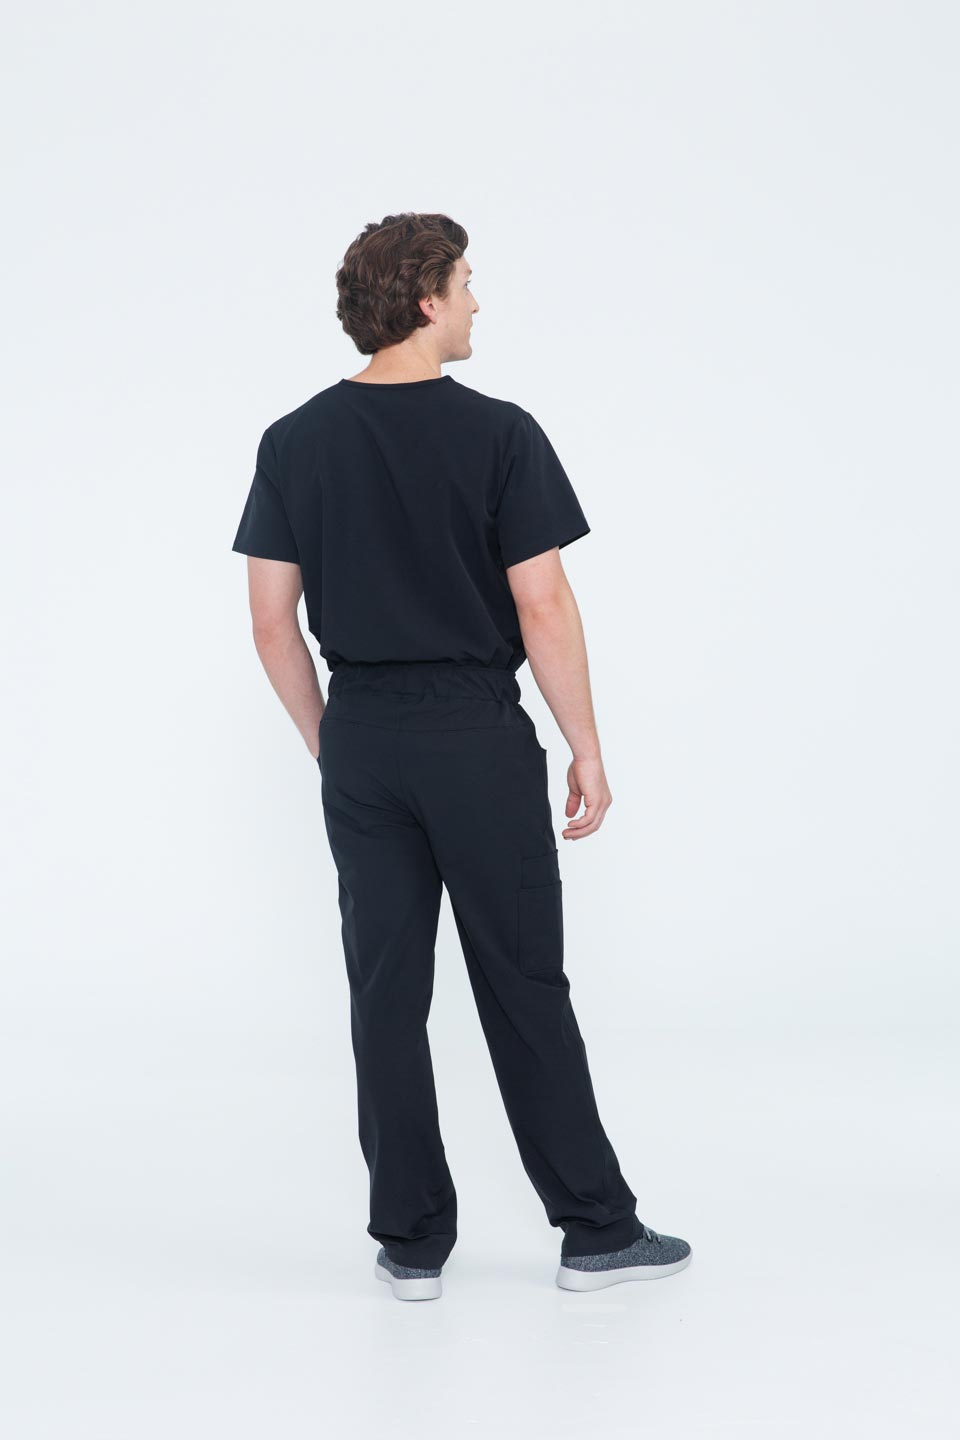 Kalea - Mens Gallant Scrub Pants - Black